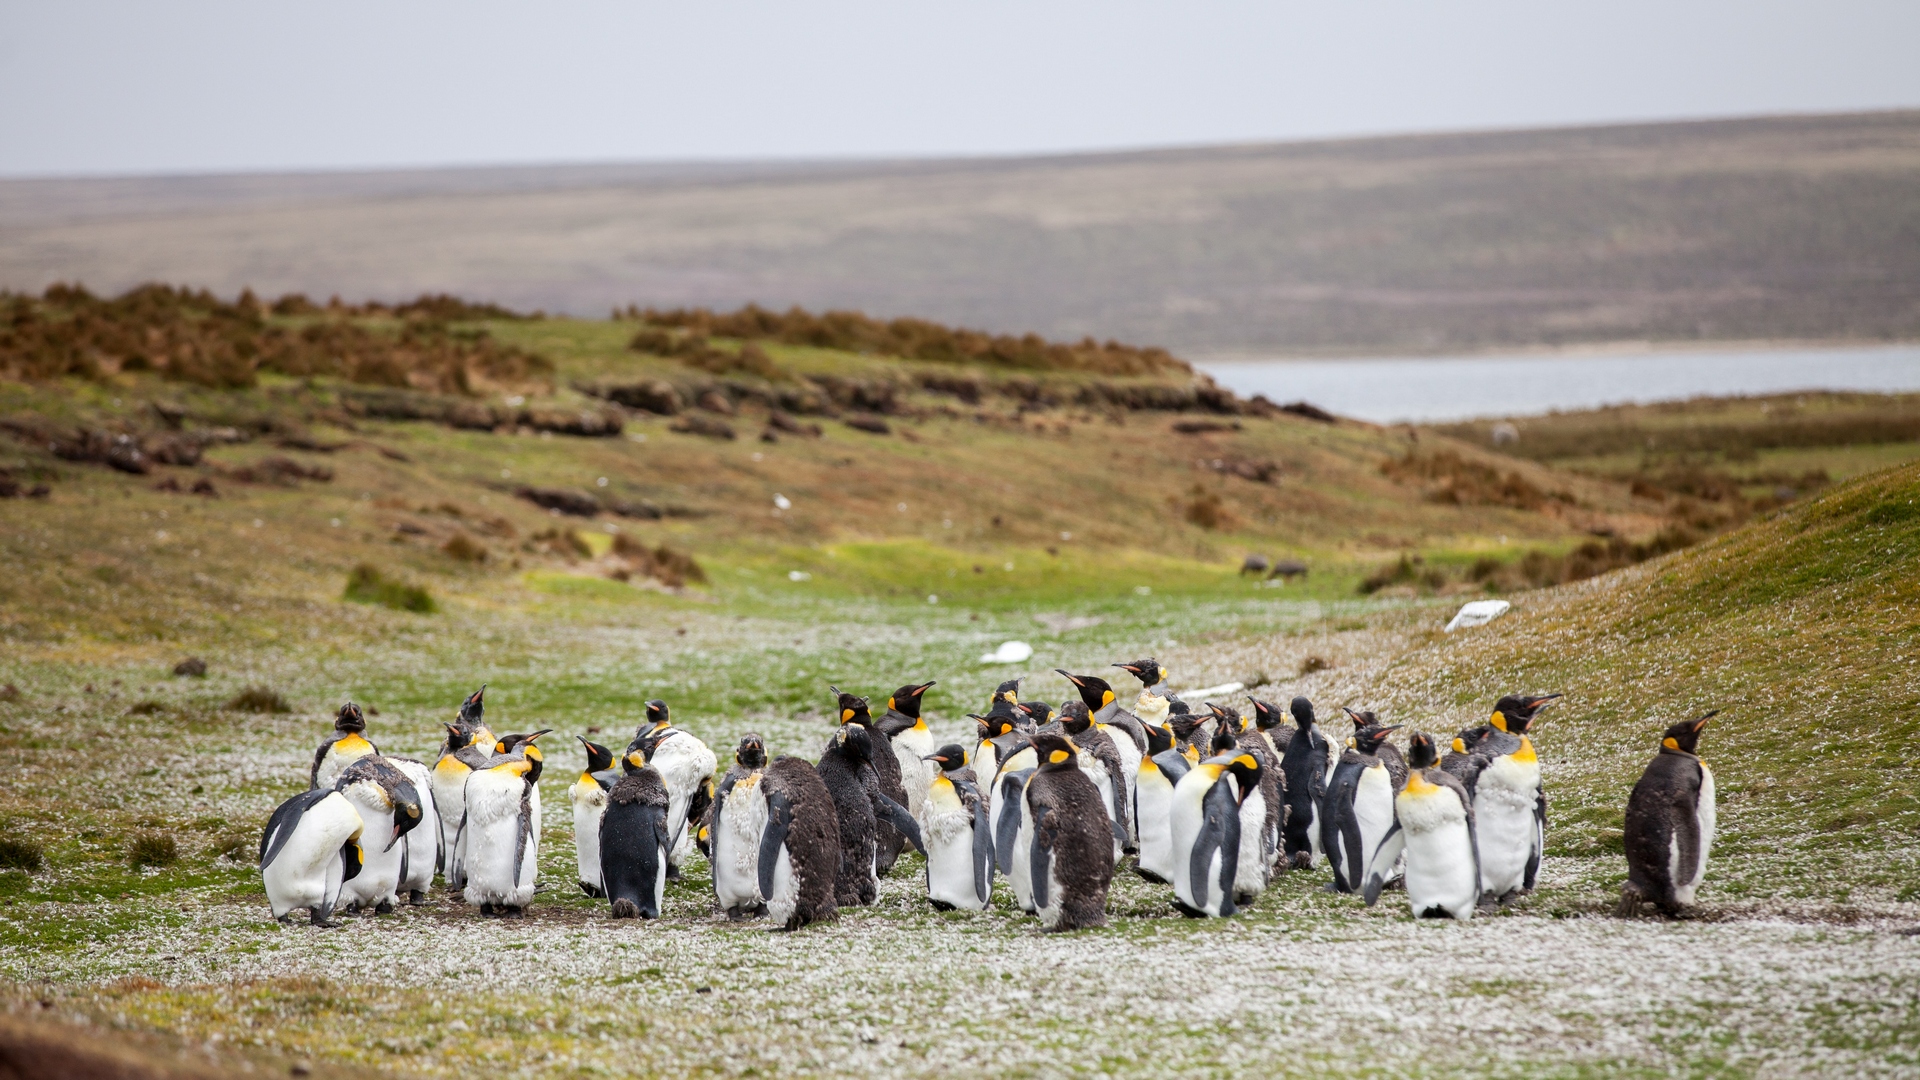 A view in The Falkland Islands